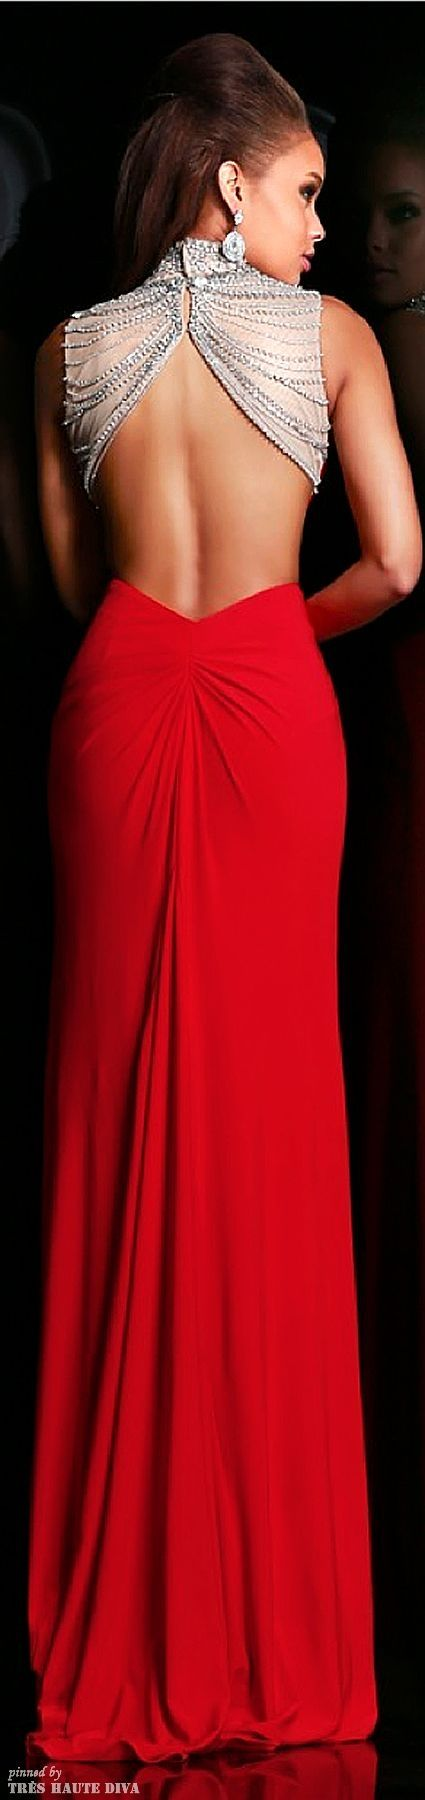 Sherri Hill 2014 Collection by PHguy